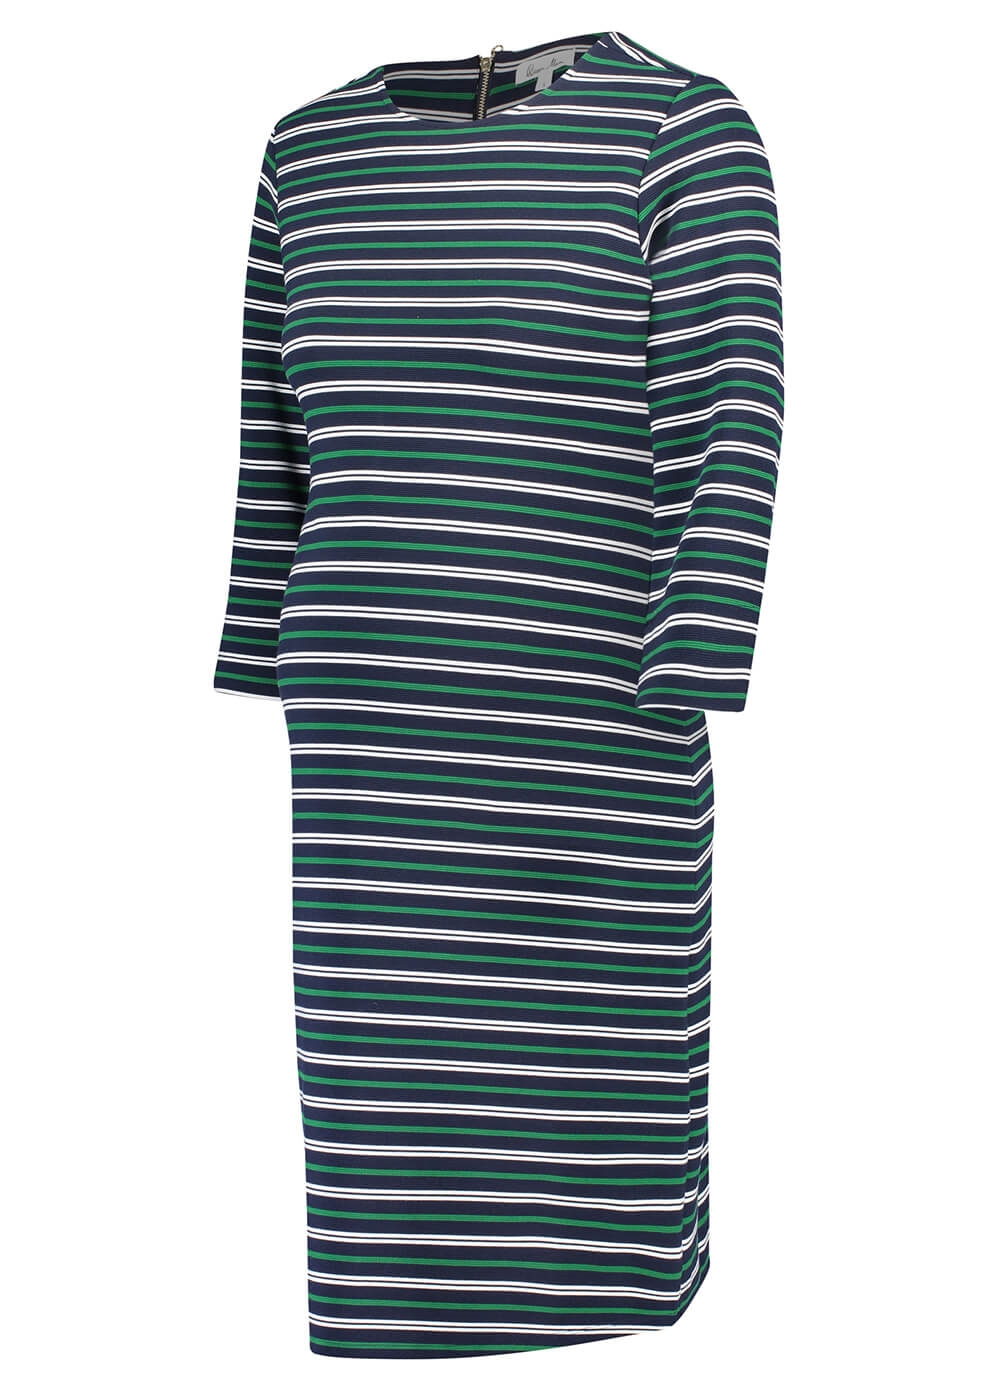 Sky Captain Maternity Shift Dress in Green Stripes by Queen mum